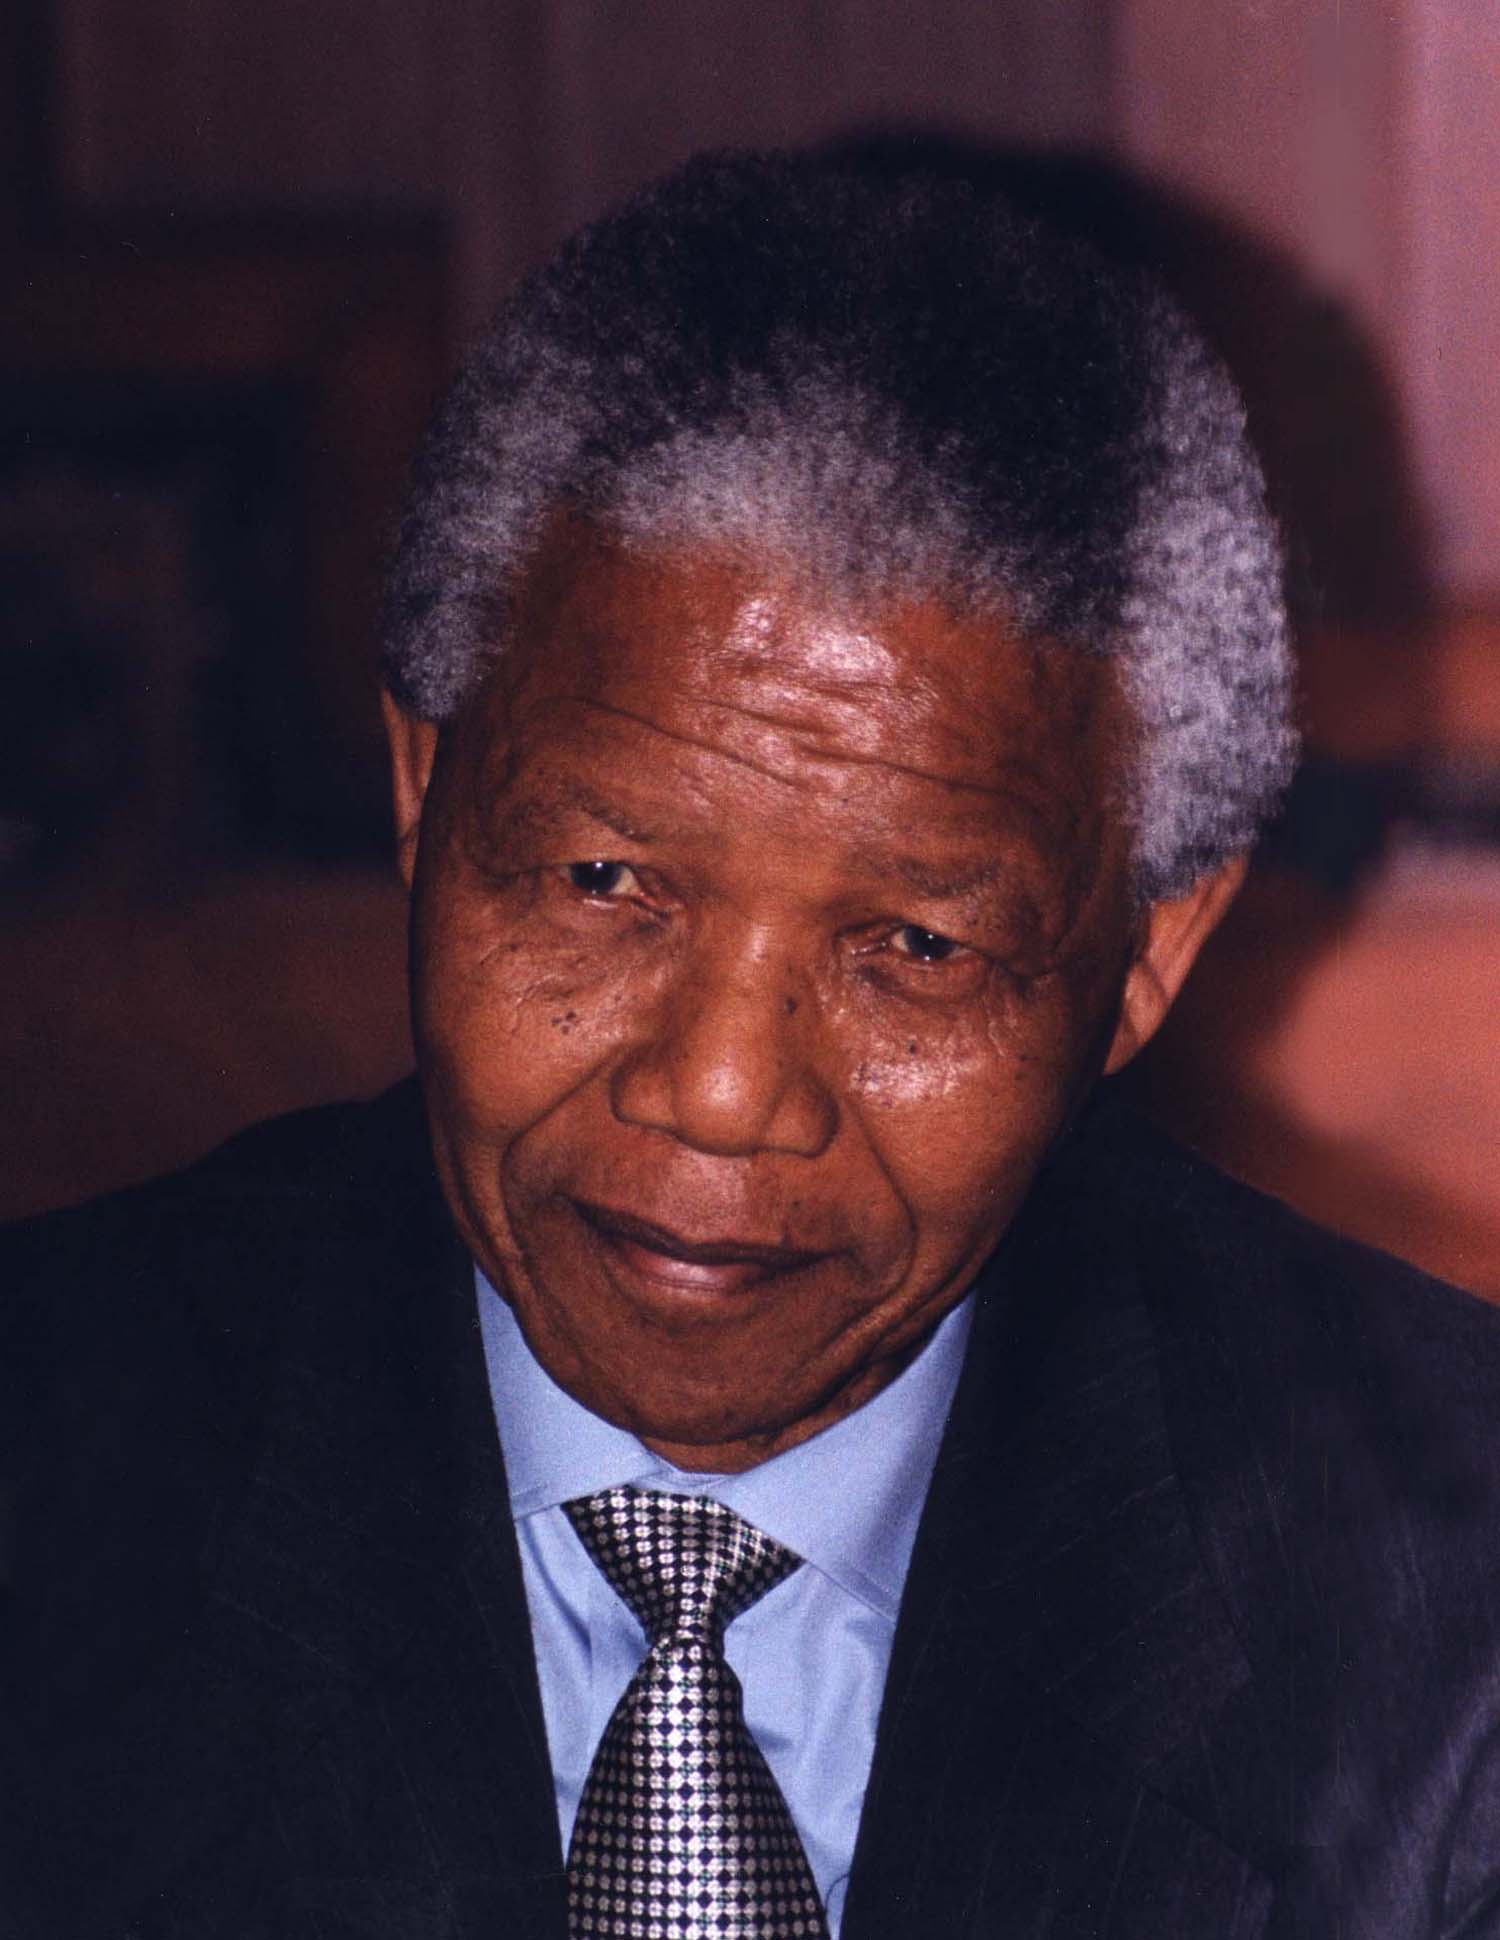 South Africa Facts, Nelson Mandela